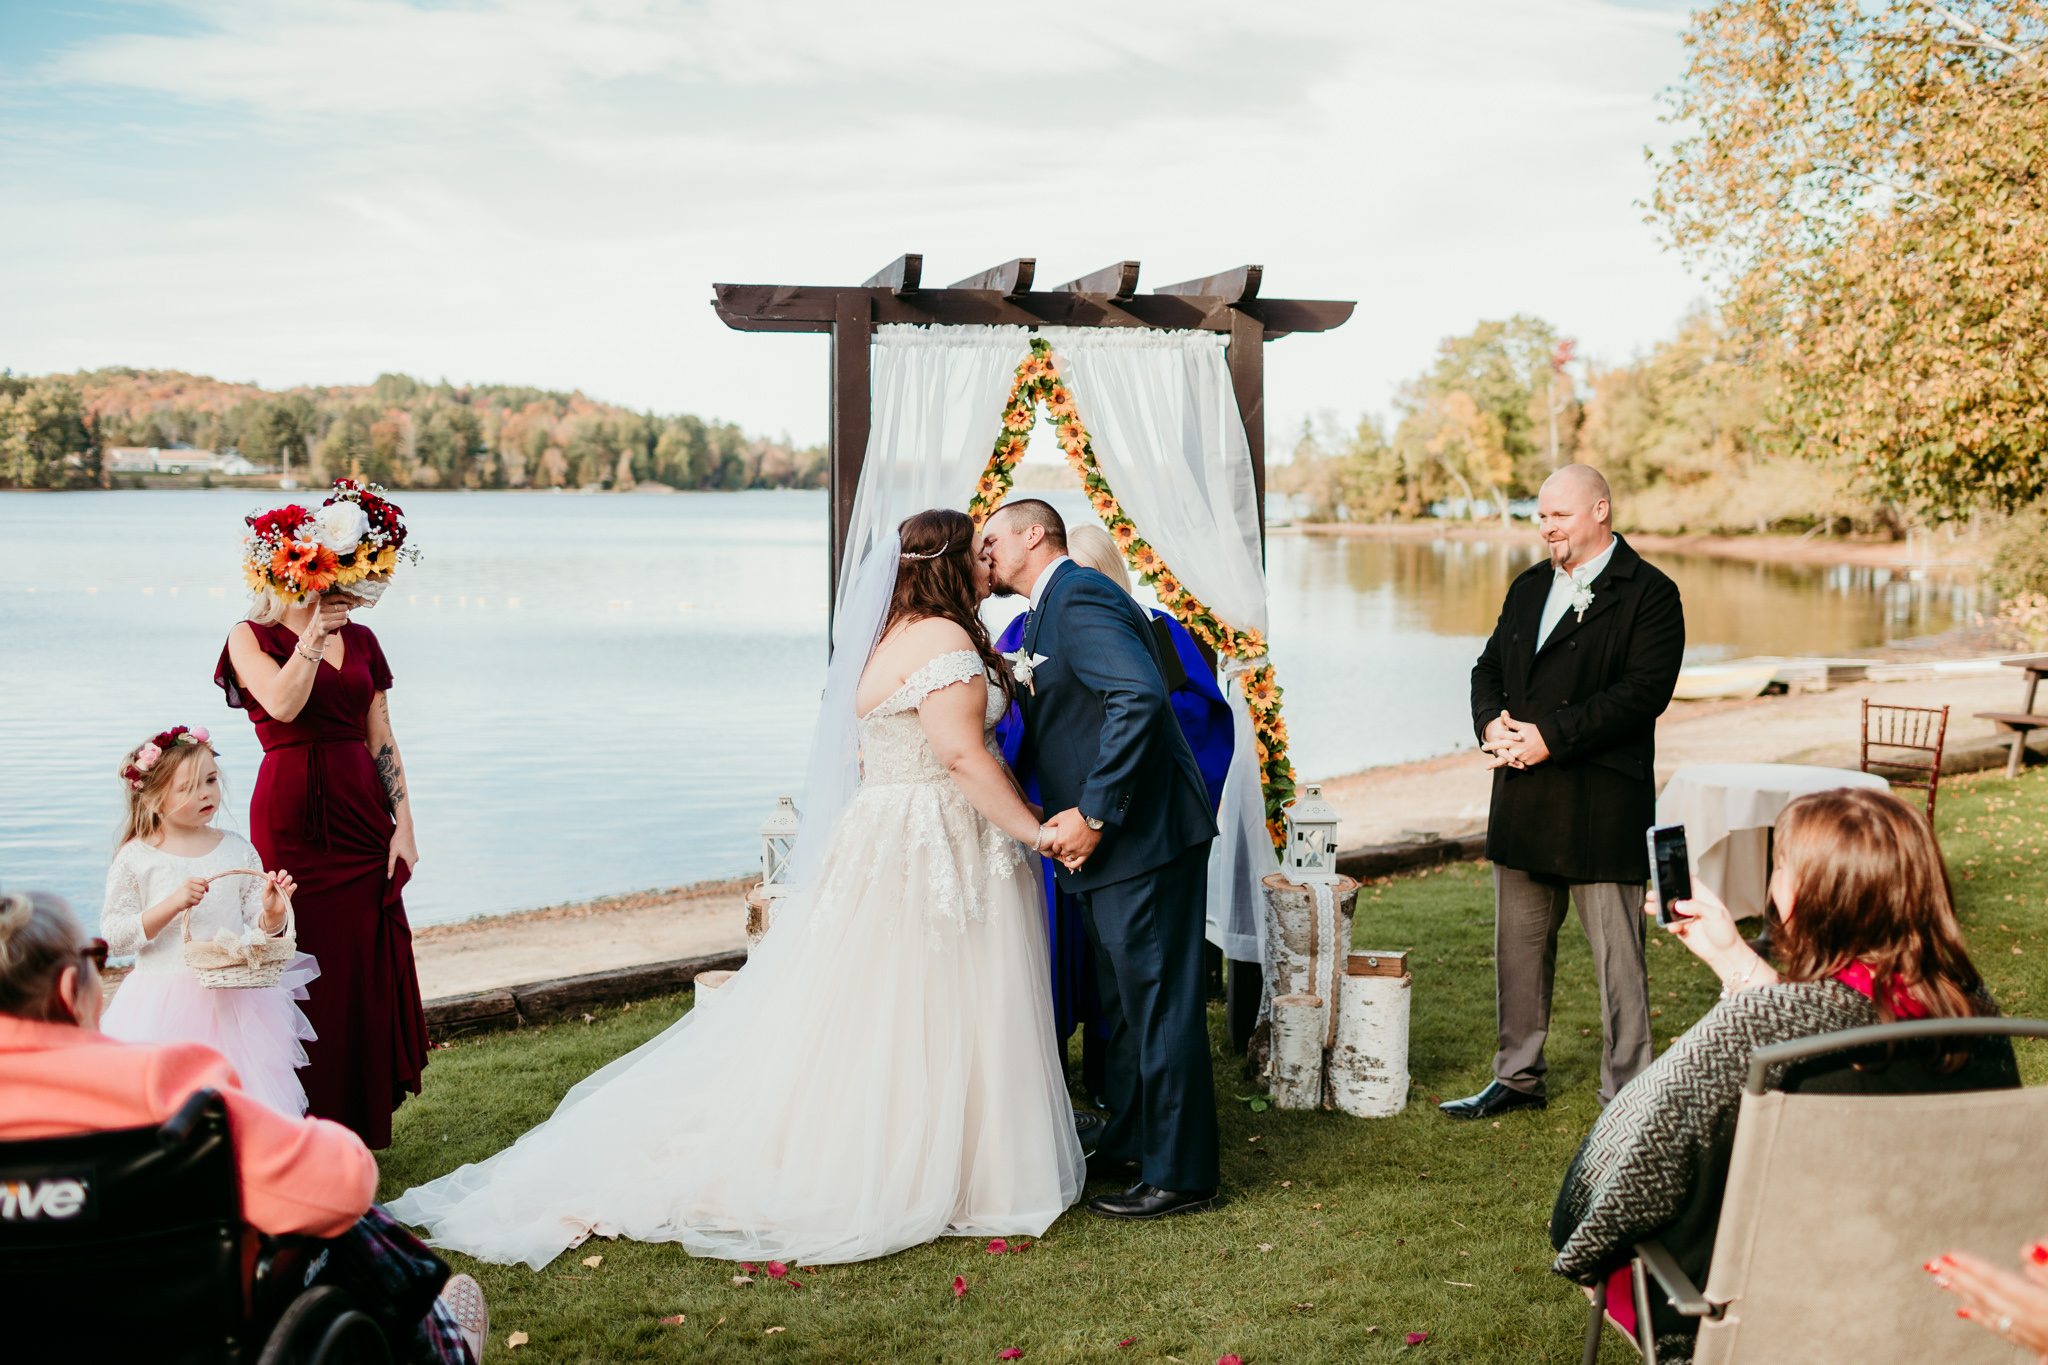 bride and groom kissing under wedding arch at their wedding in haliburton